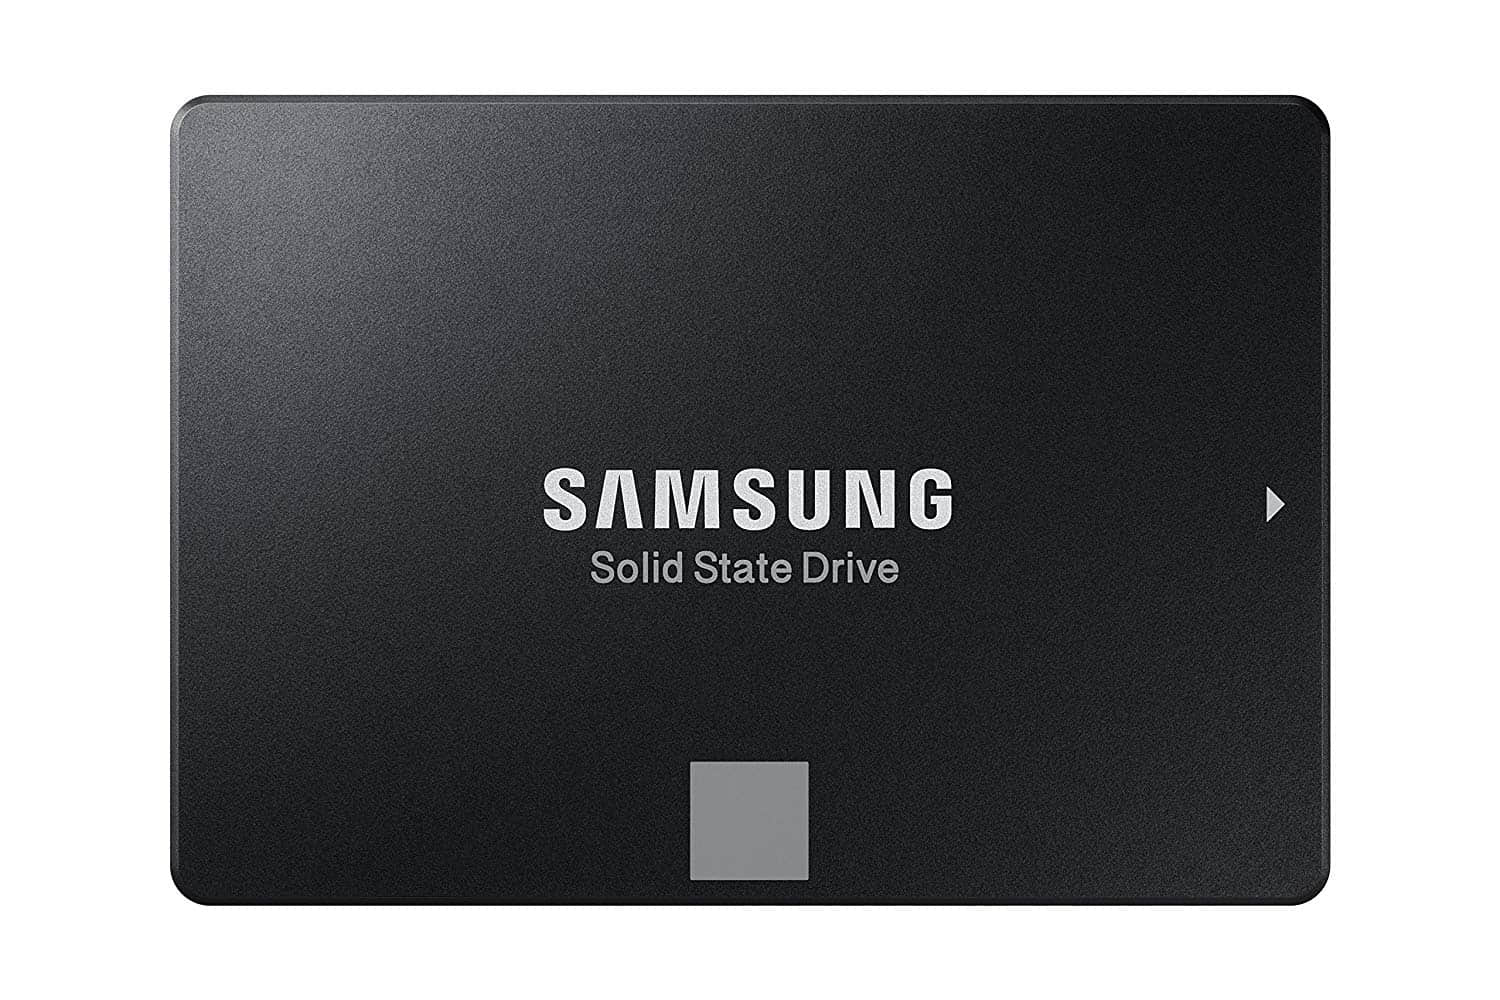 Samsung 860 Evo 500GB- 2.5 inch SATA III Internal SSD (MZ-76E500B/AM)-Increase Performance